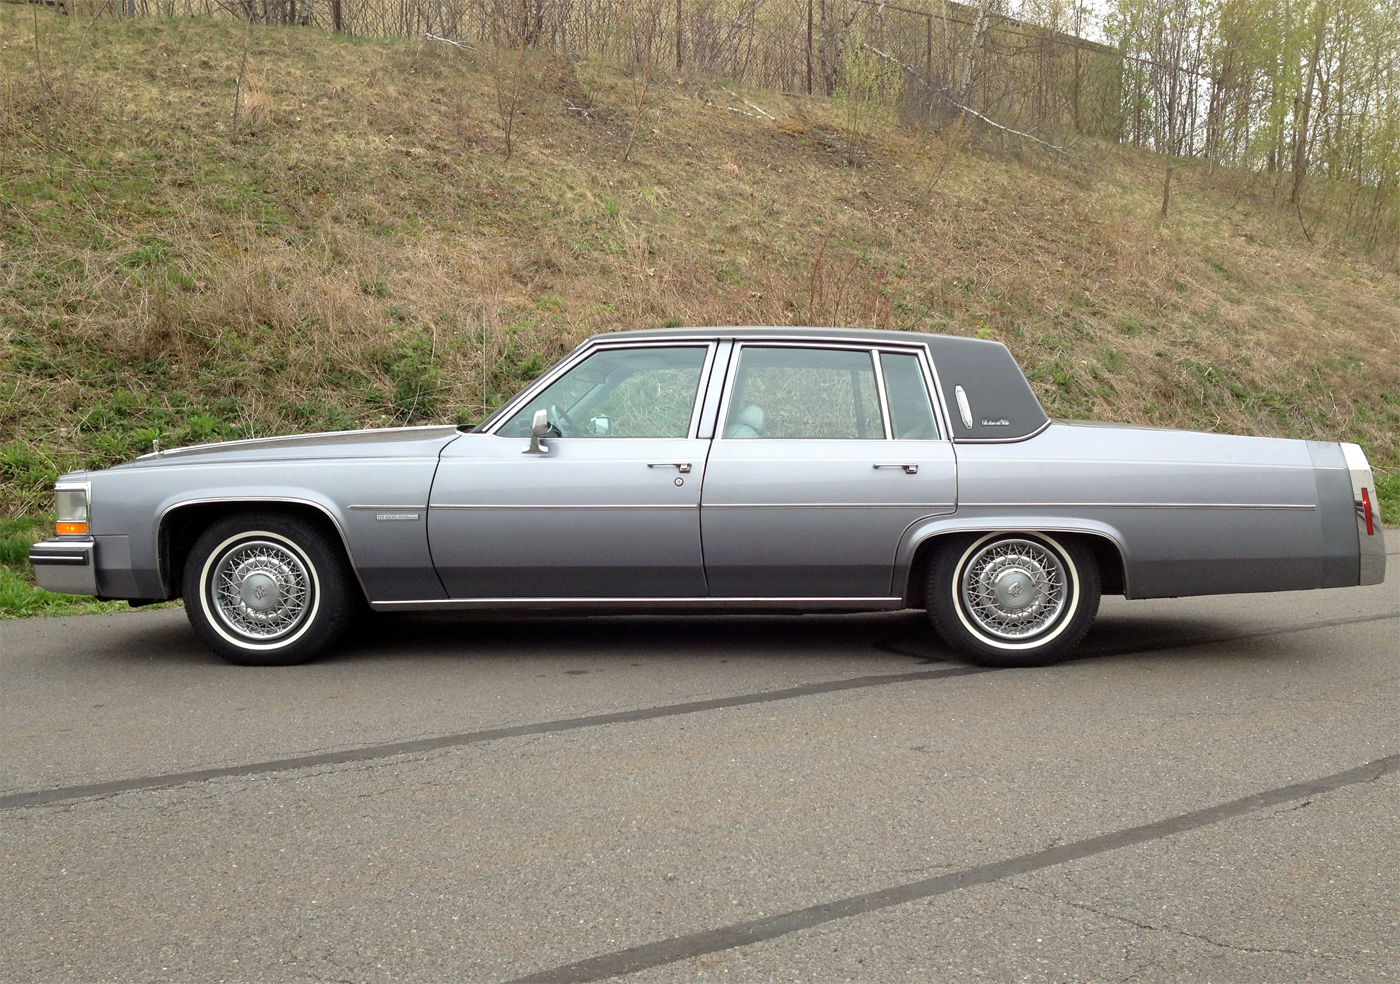 File:1982 Cadillac Sedan Deville.png - Wikimedia Commons